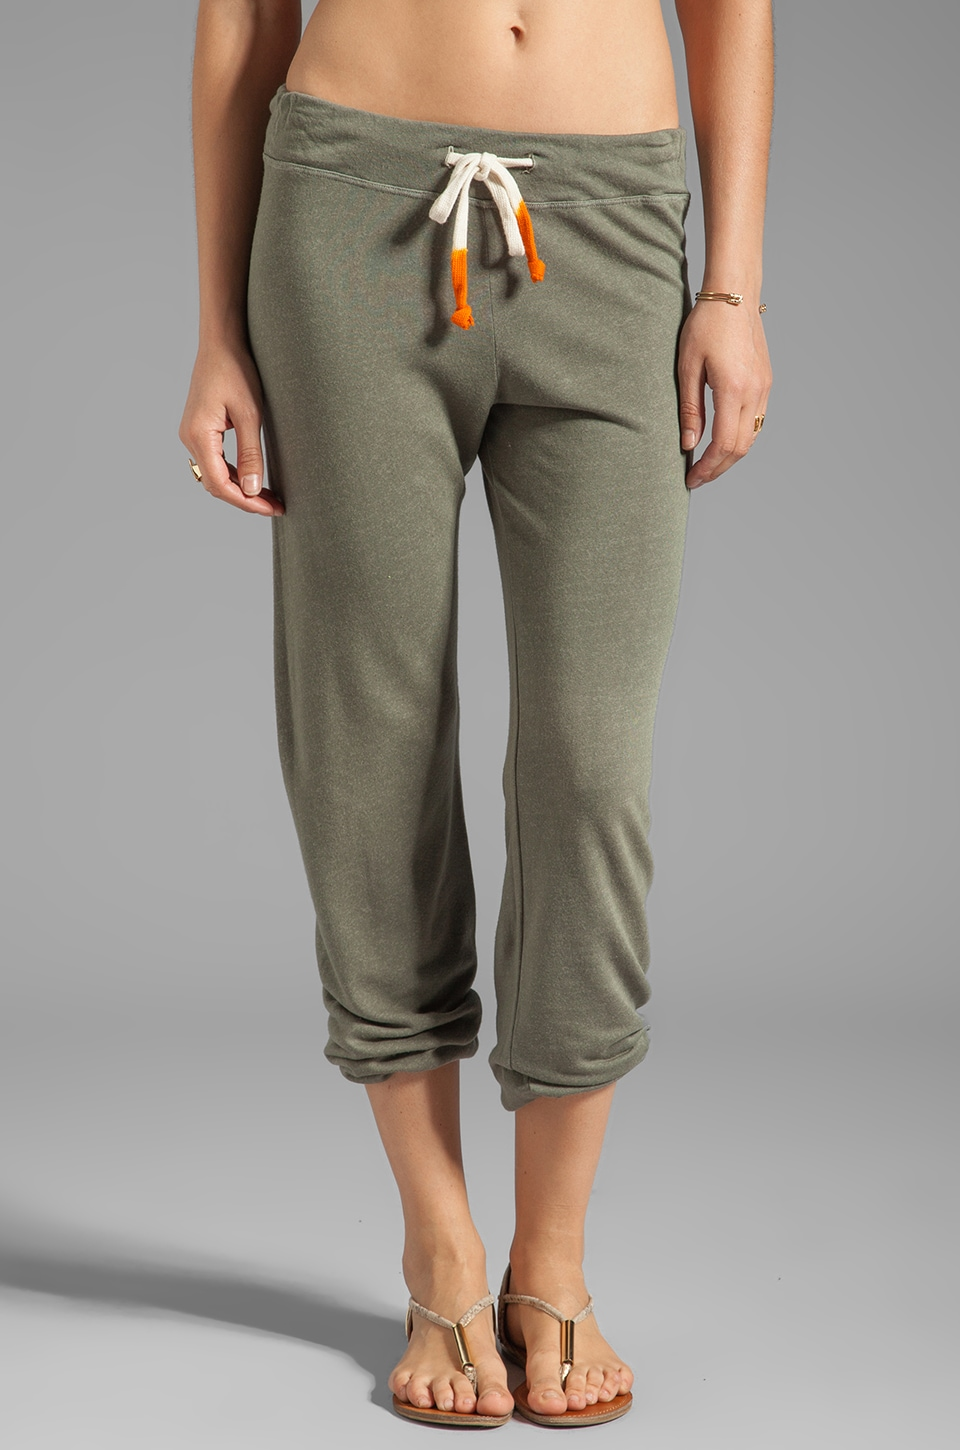 SUNDRY Classic Sweatpants in Army